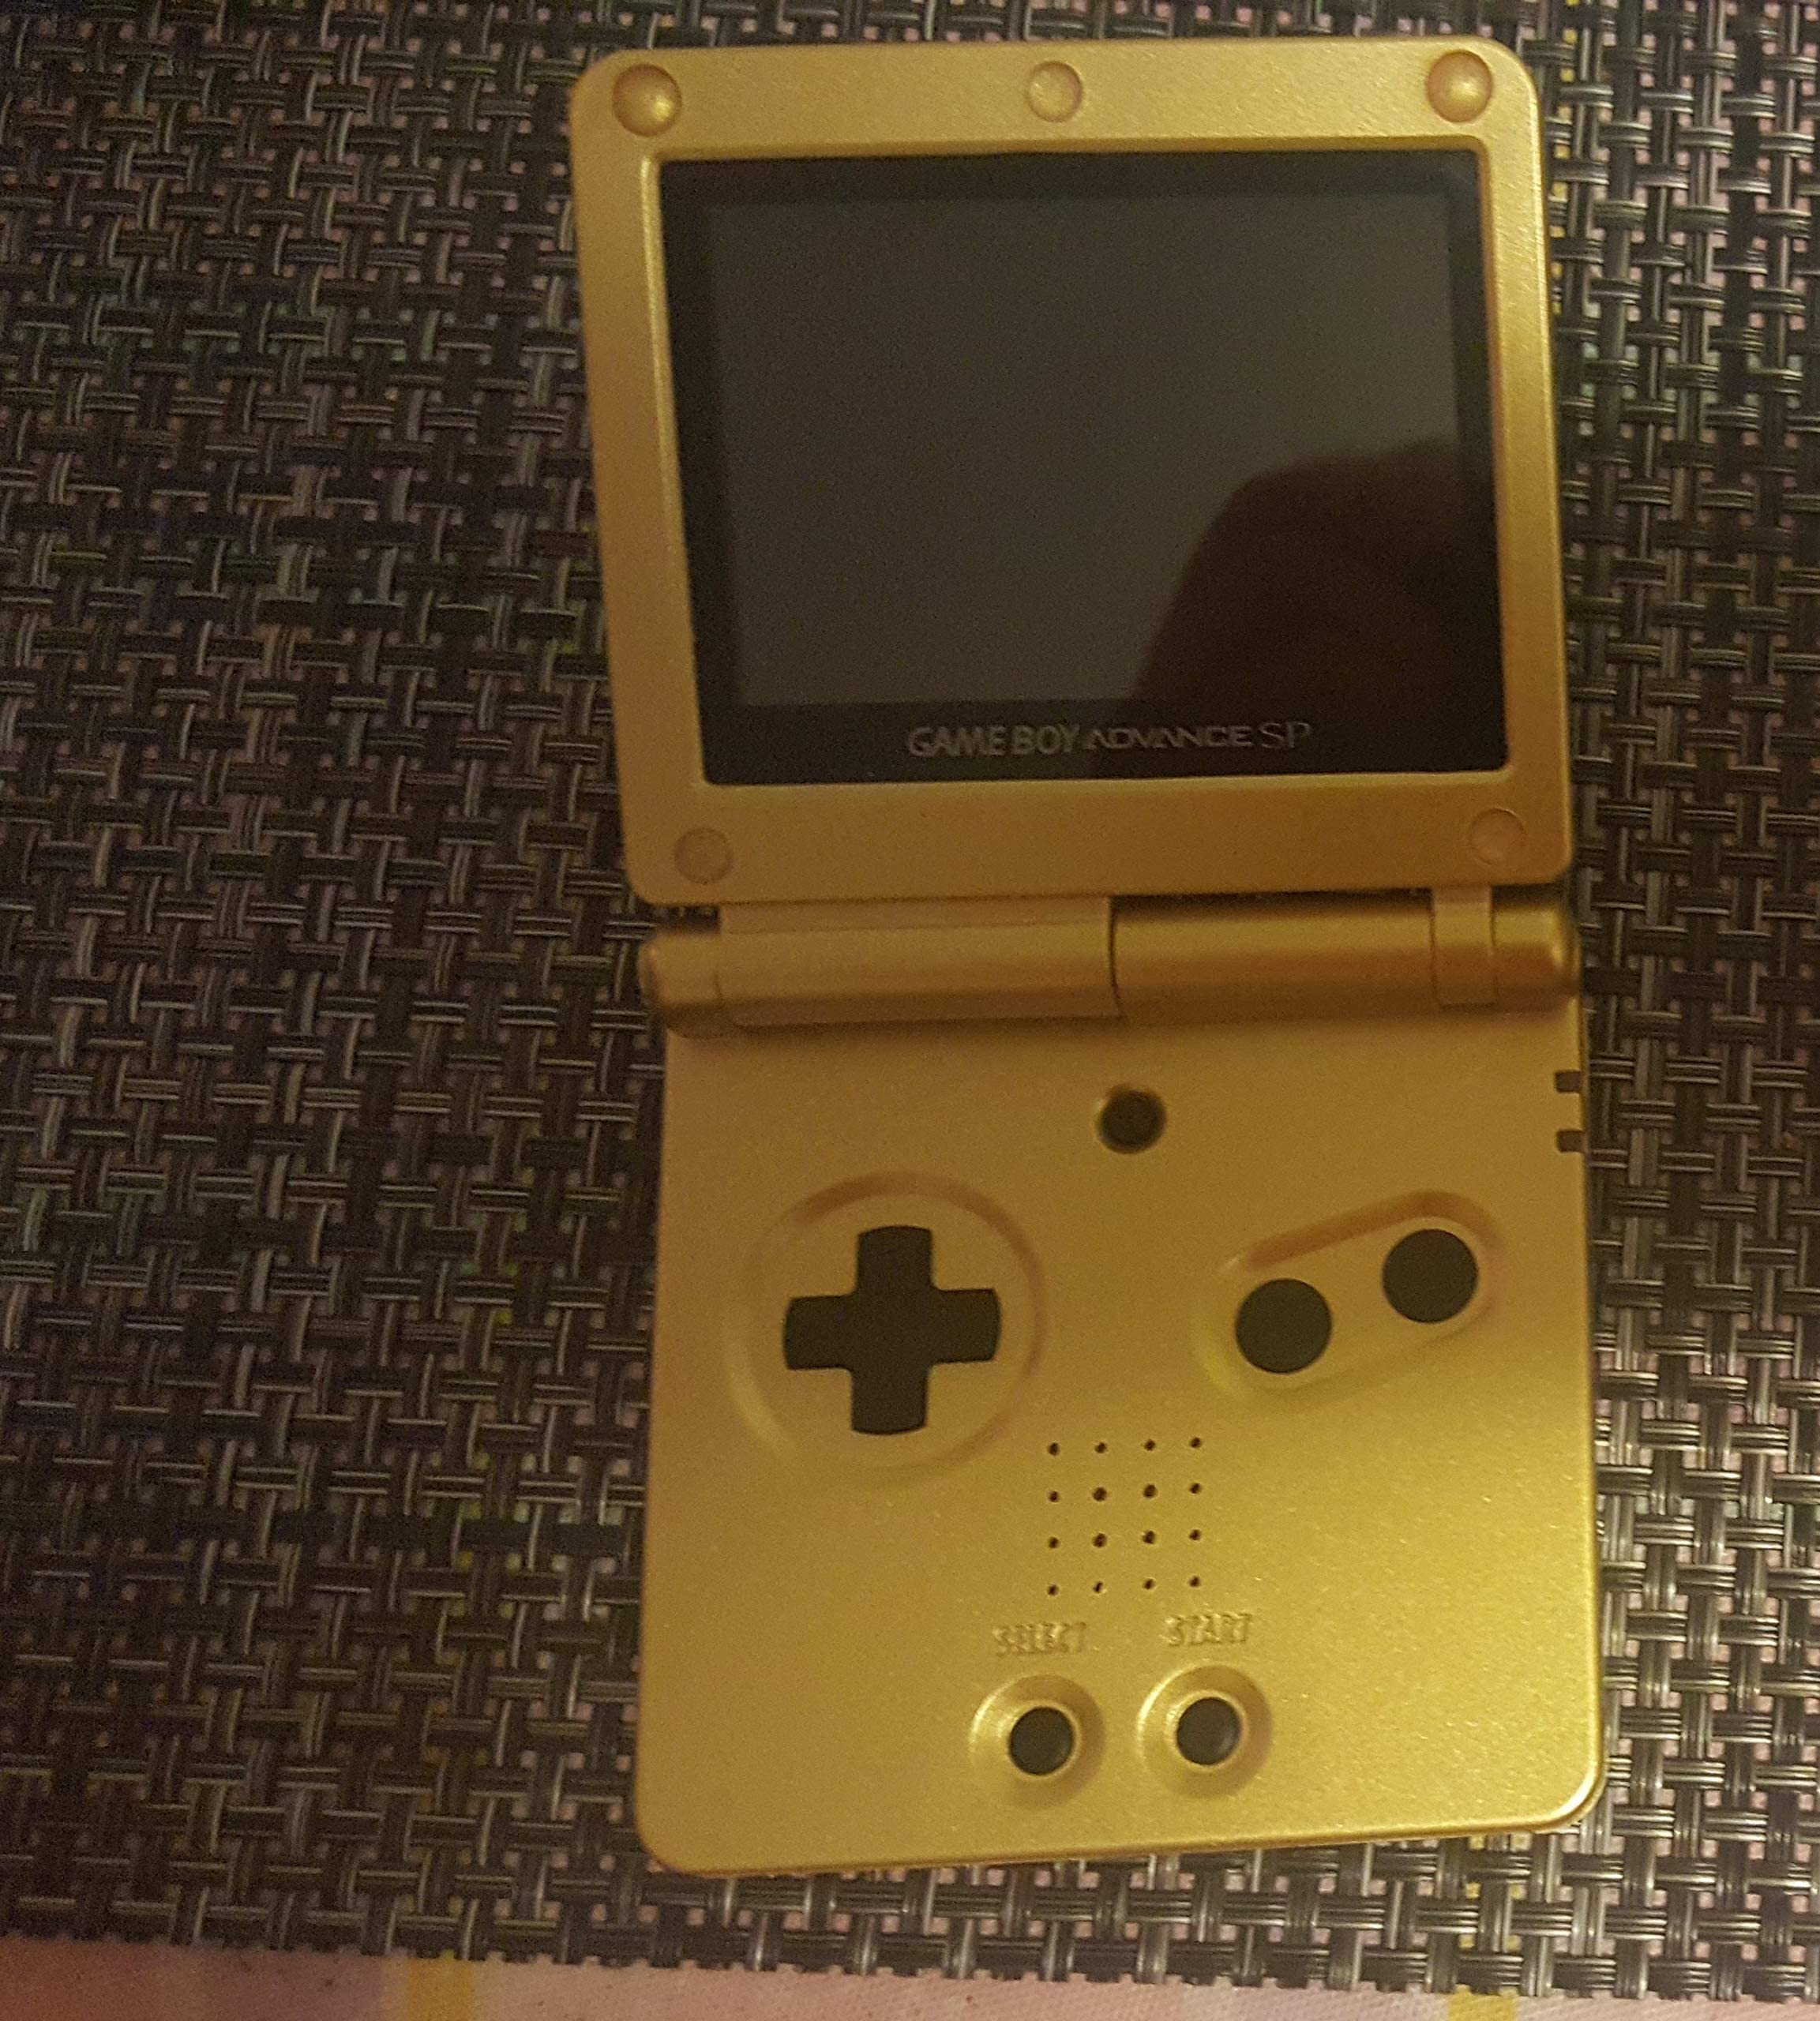 Amazon.com: GAME BOY ADVANCE SP- GOLD: ALL: Video Games